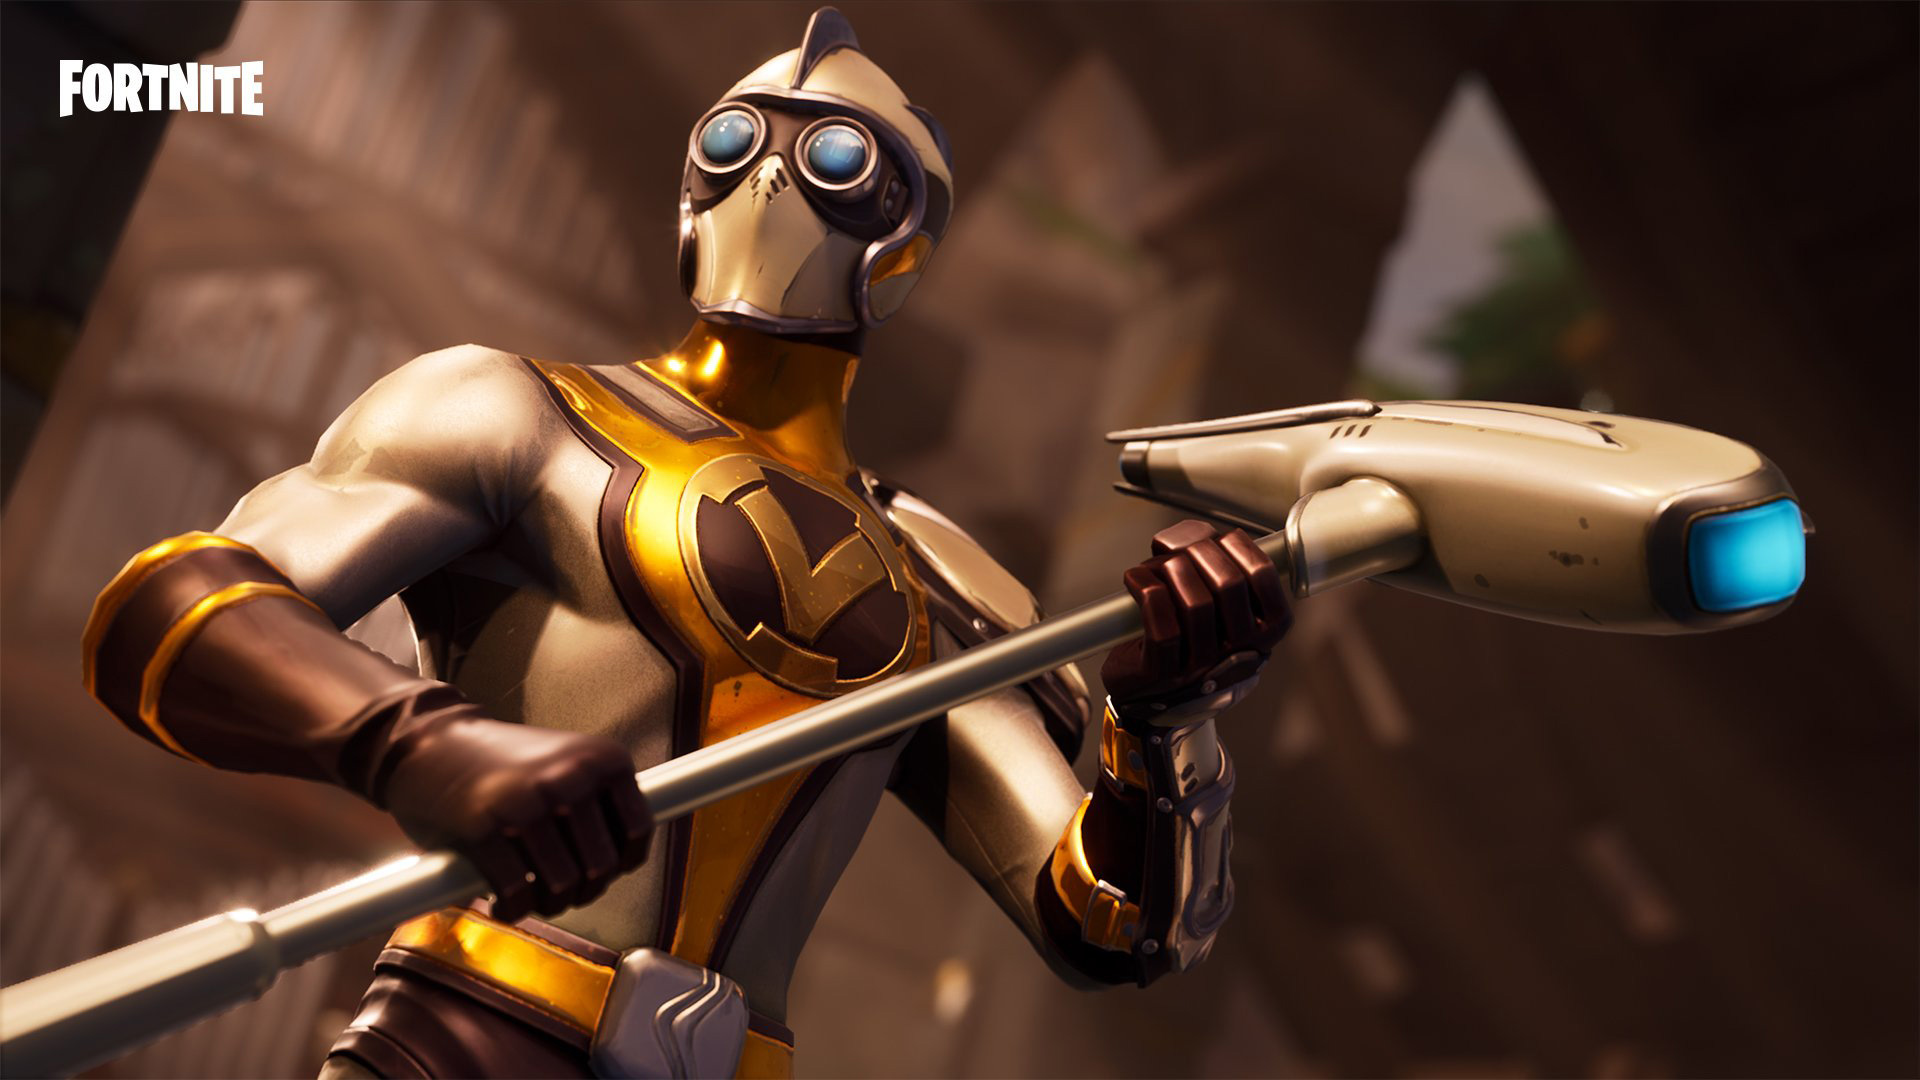 Fornite Wallpaper Engine Fortnite Venturion Skin Outfit Pngs Images Pro Game